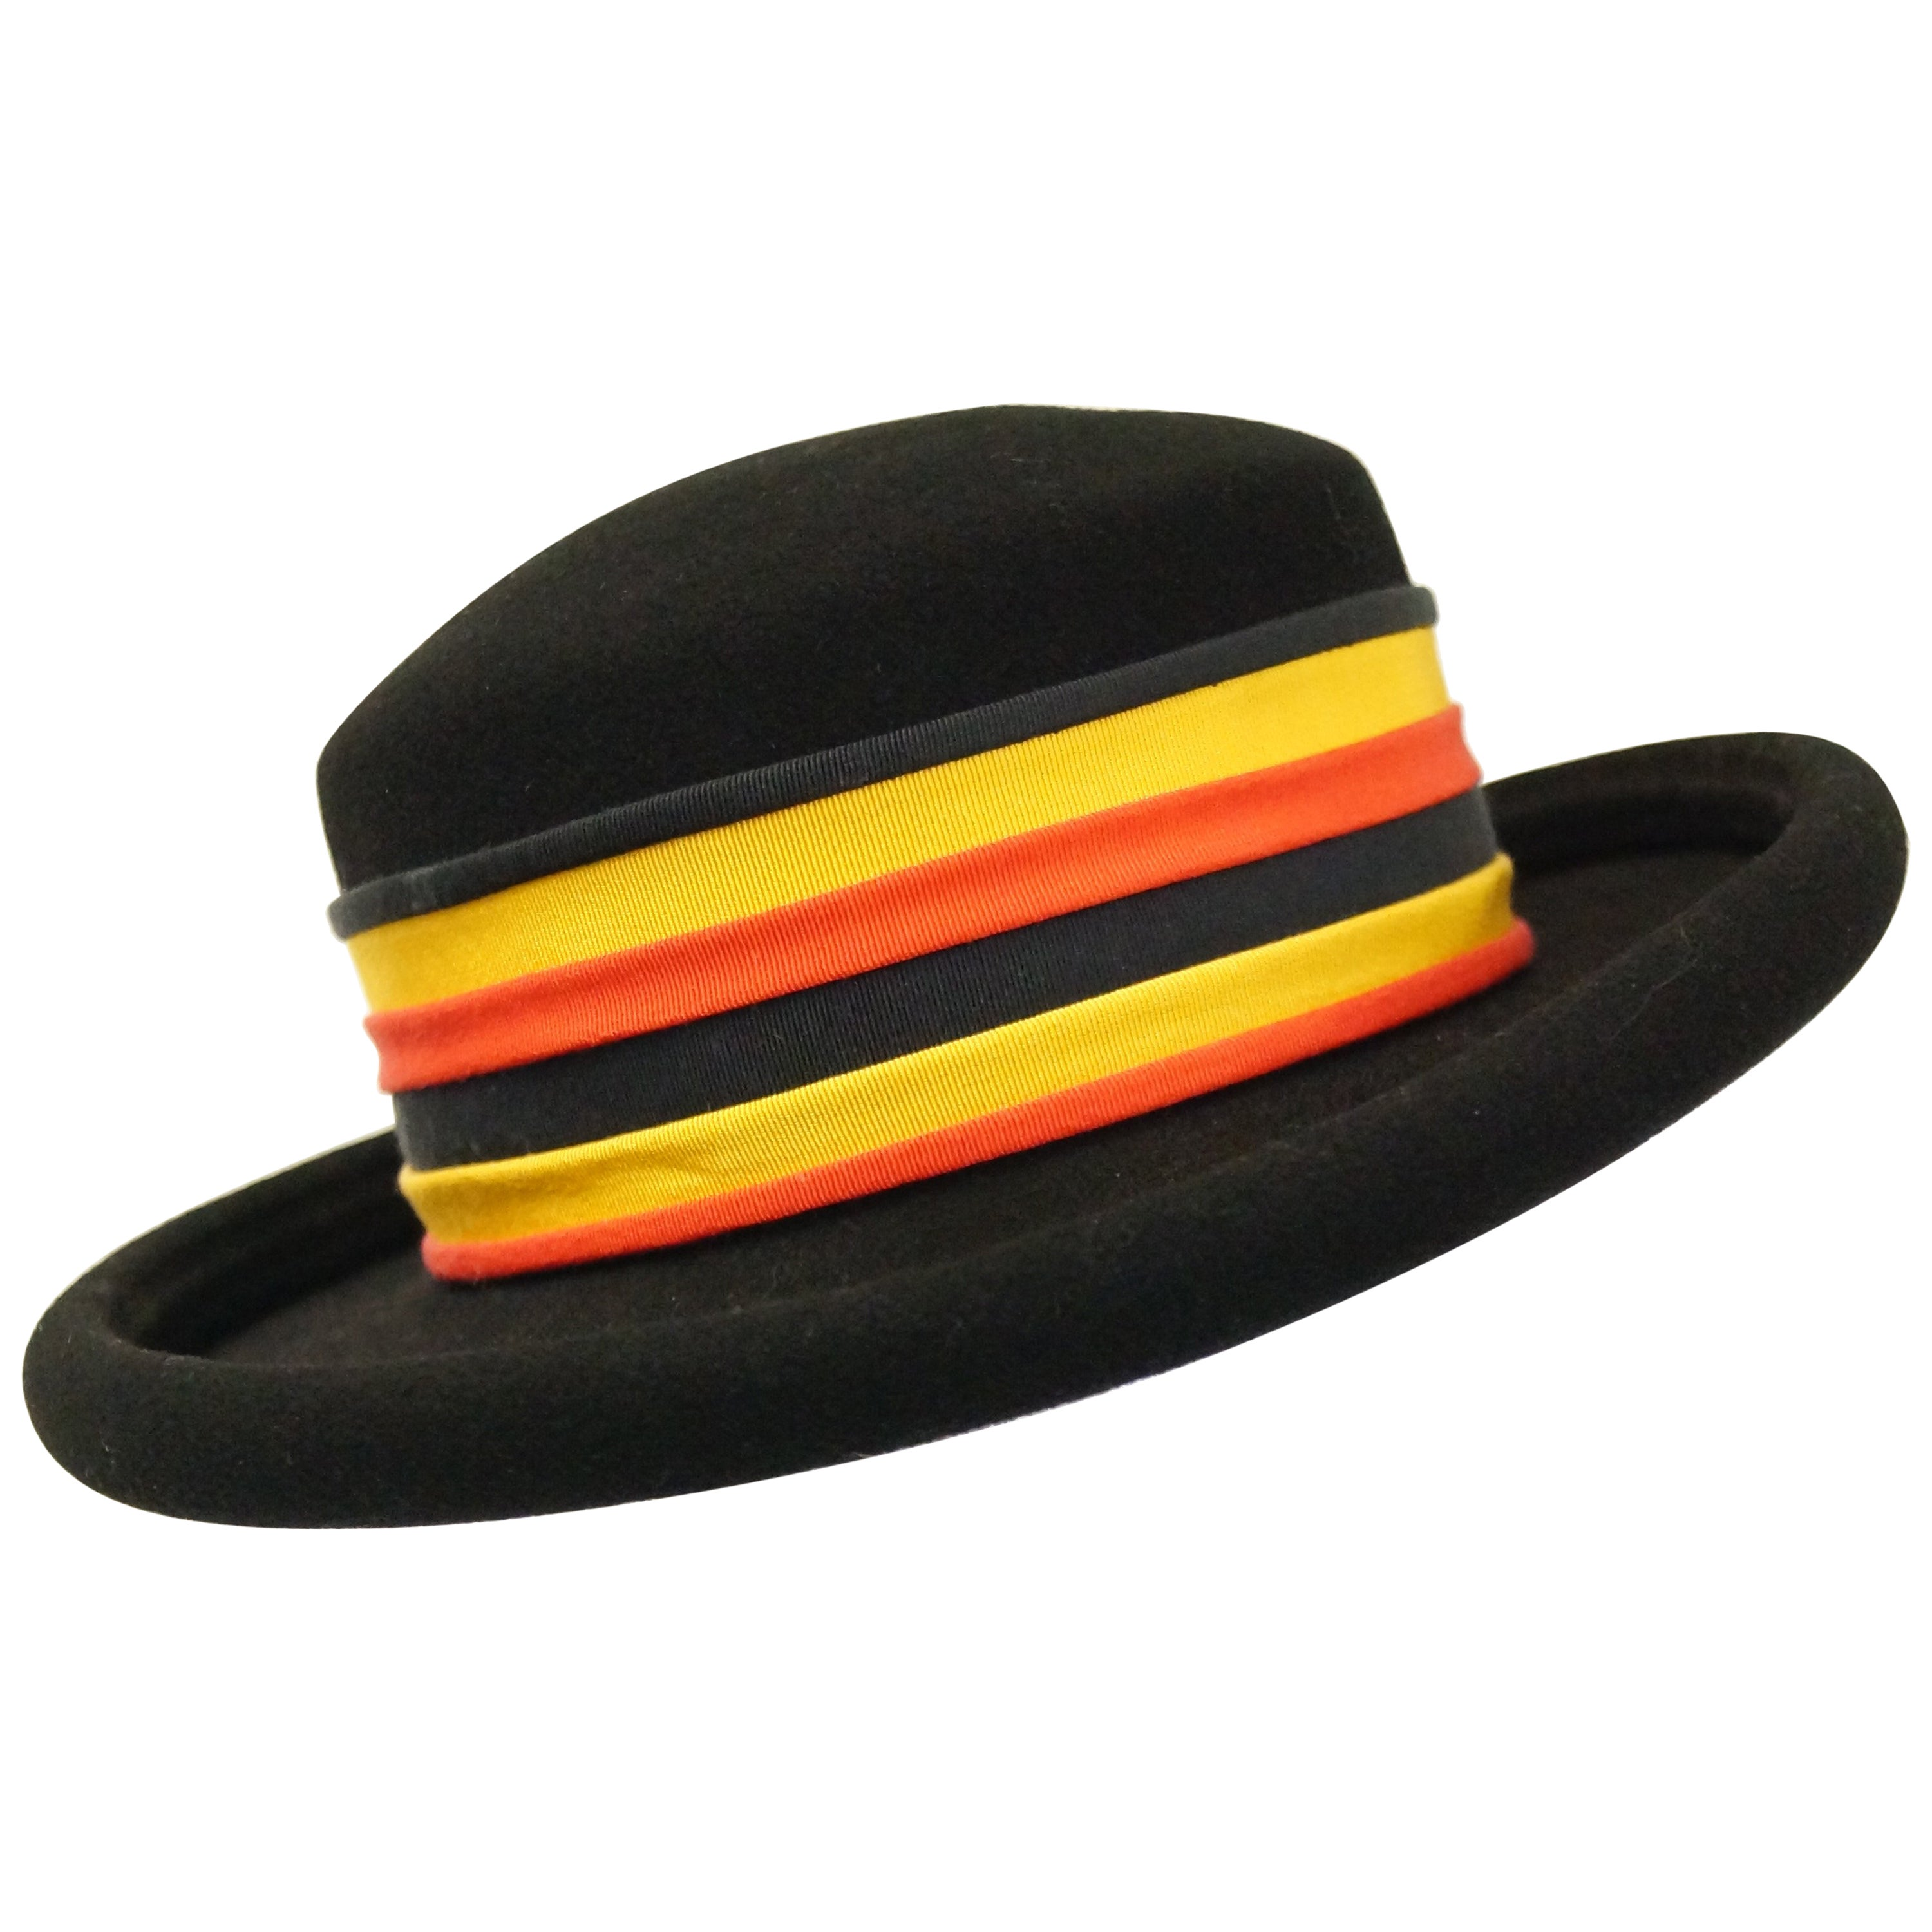 M 1980s Adolfo Black Felt Hat with Yellow and Orange Ribbon For Sale at  1stdibs c1a20dee5d1